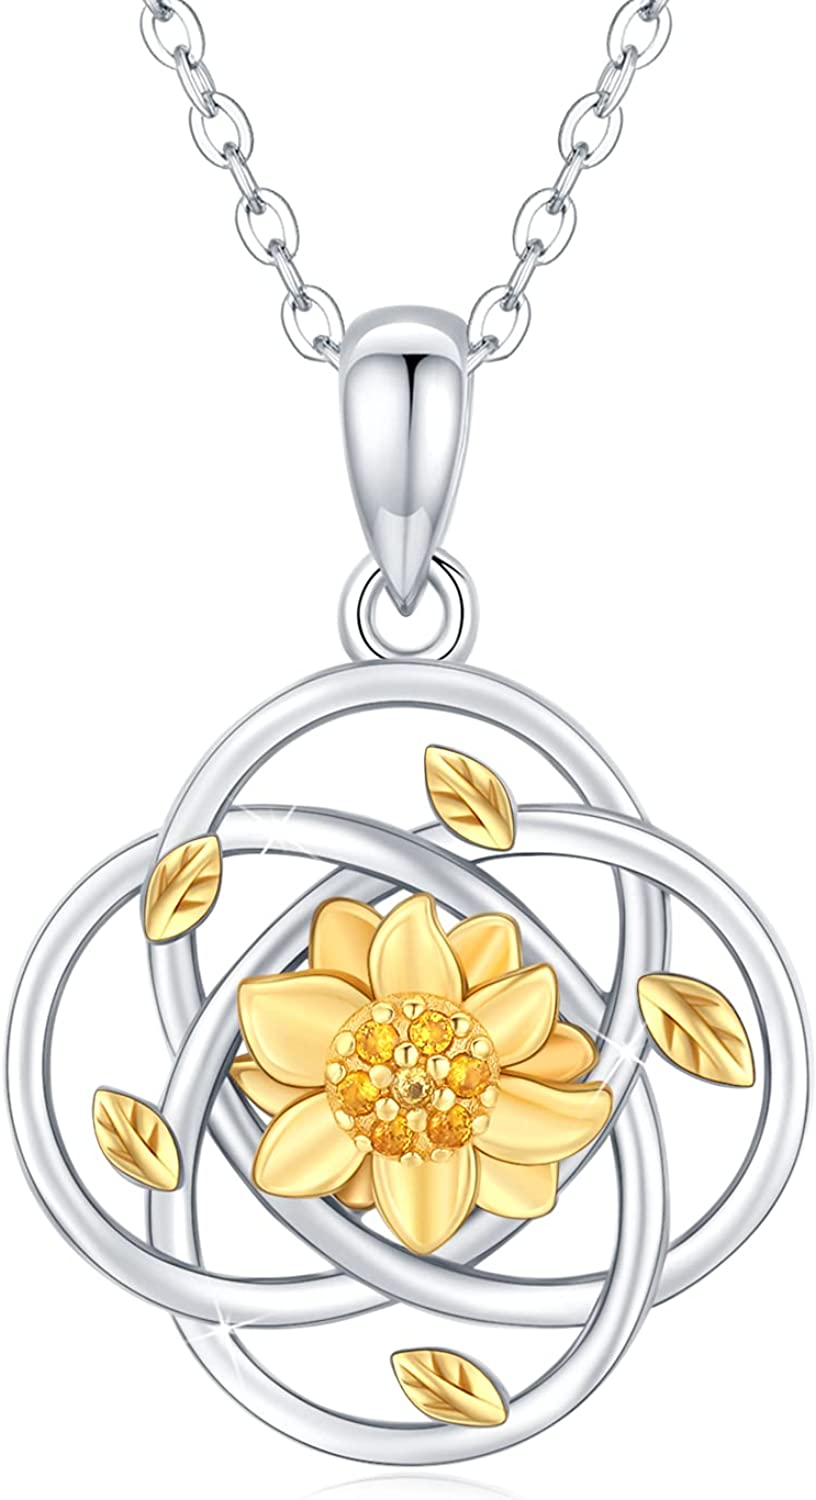 Waysles Sunflower Necklace Limited price for Women Silver Irish Reservation Sterling 925